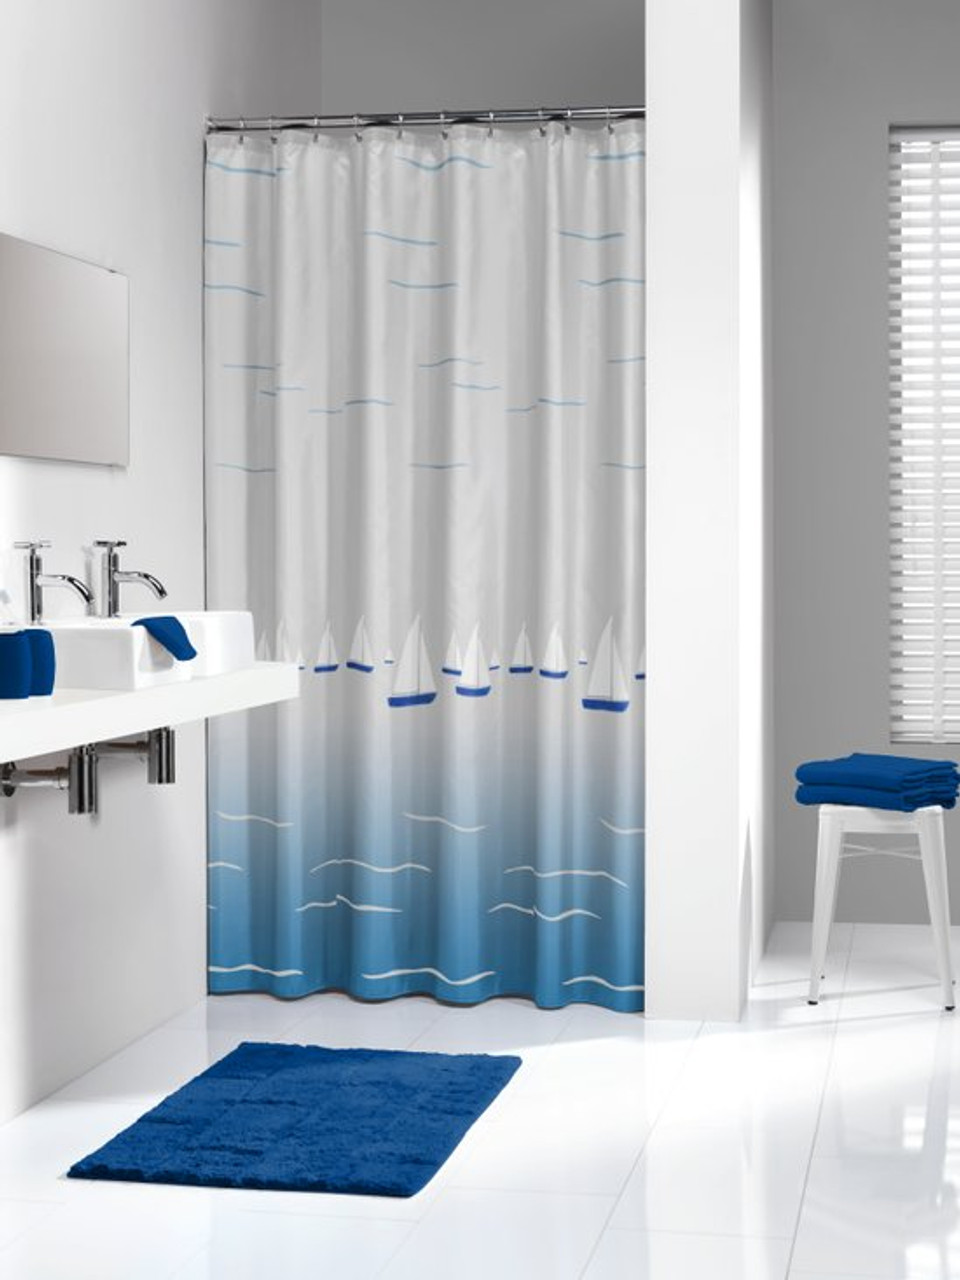 extra long shower curtain 72 x 78 inch sealskin barca boat blue and white peva